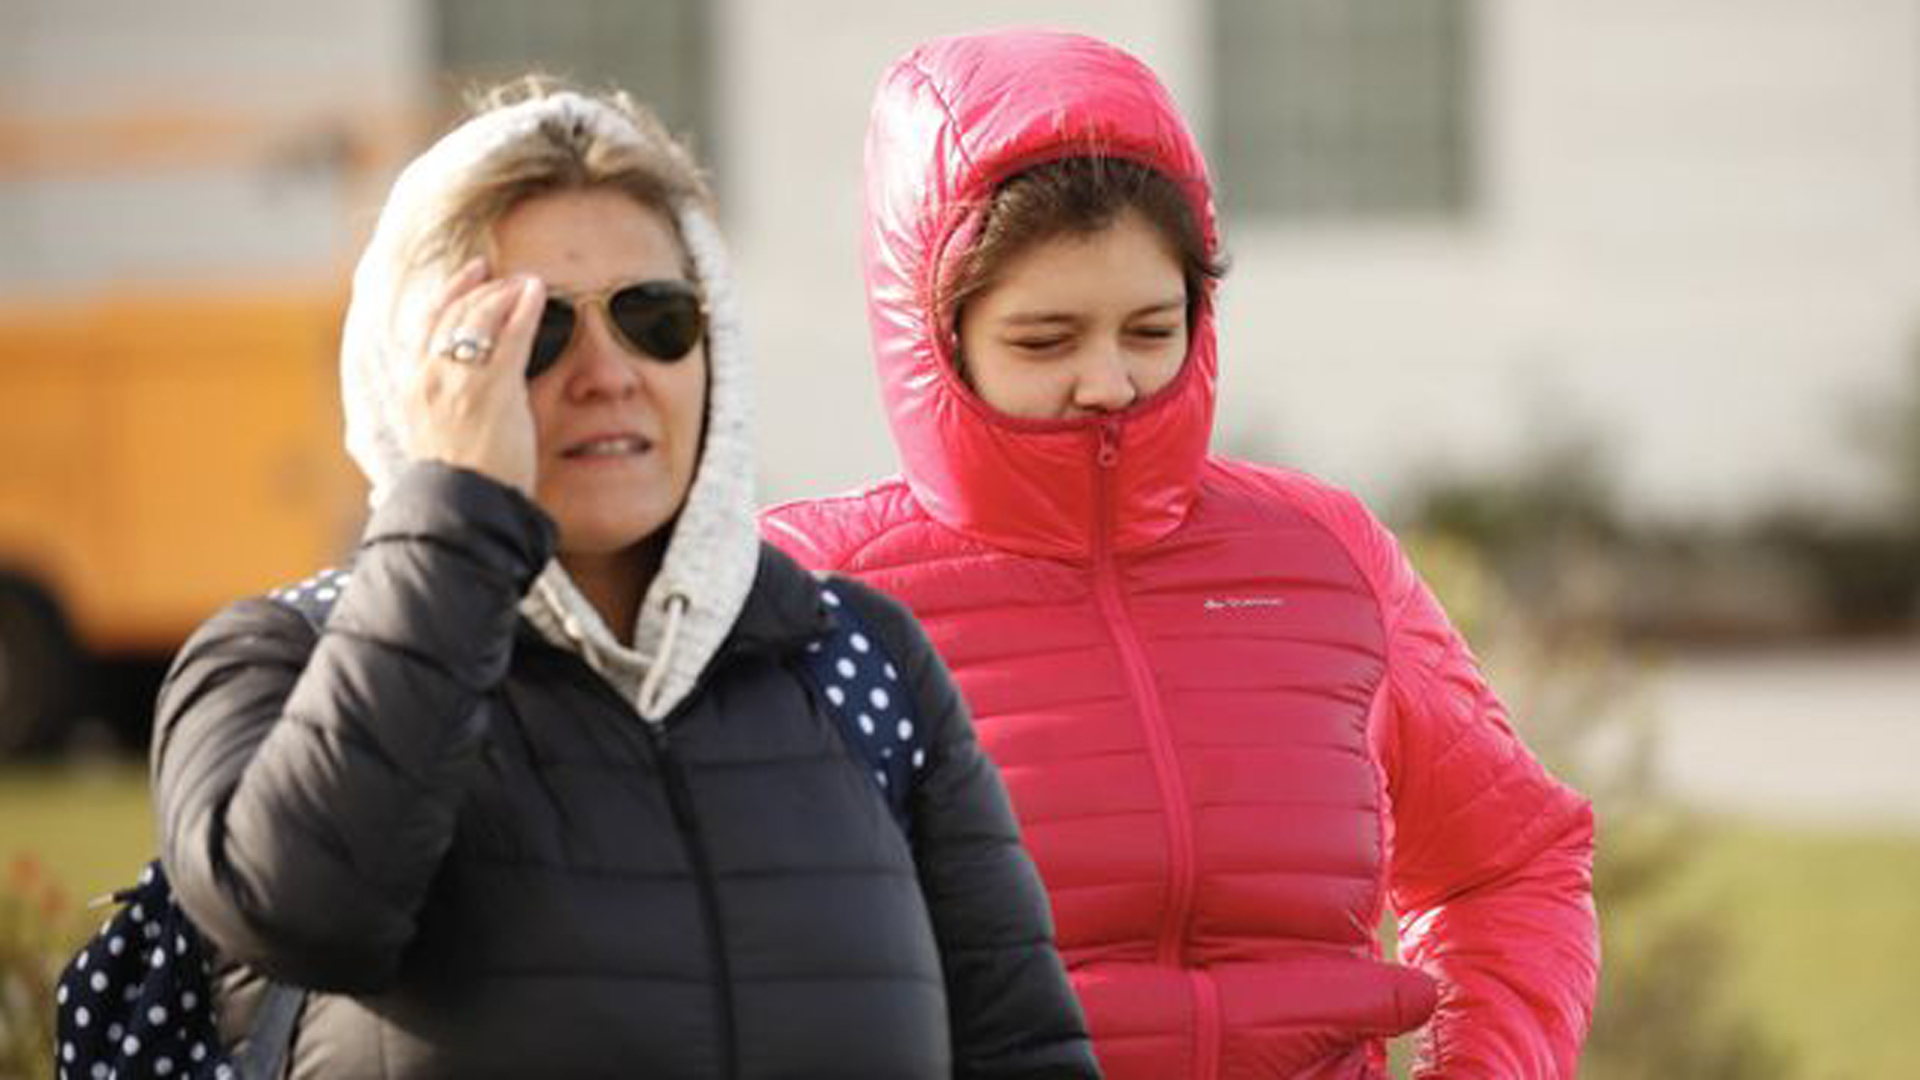 A mother and daughter bundle up for the cold weather at the Griffith Observatory on Feb. 21, 2019. (Credit: Al Seib / Los Angeles Times)